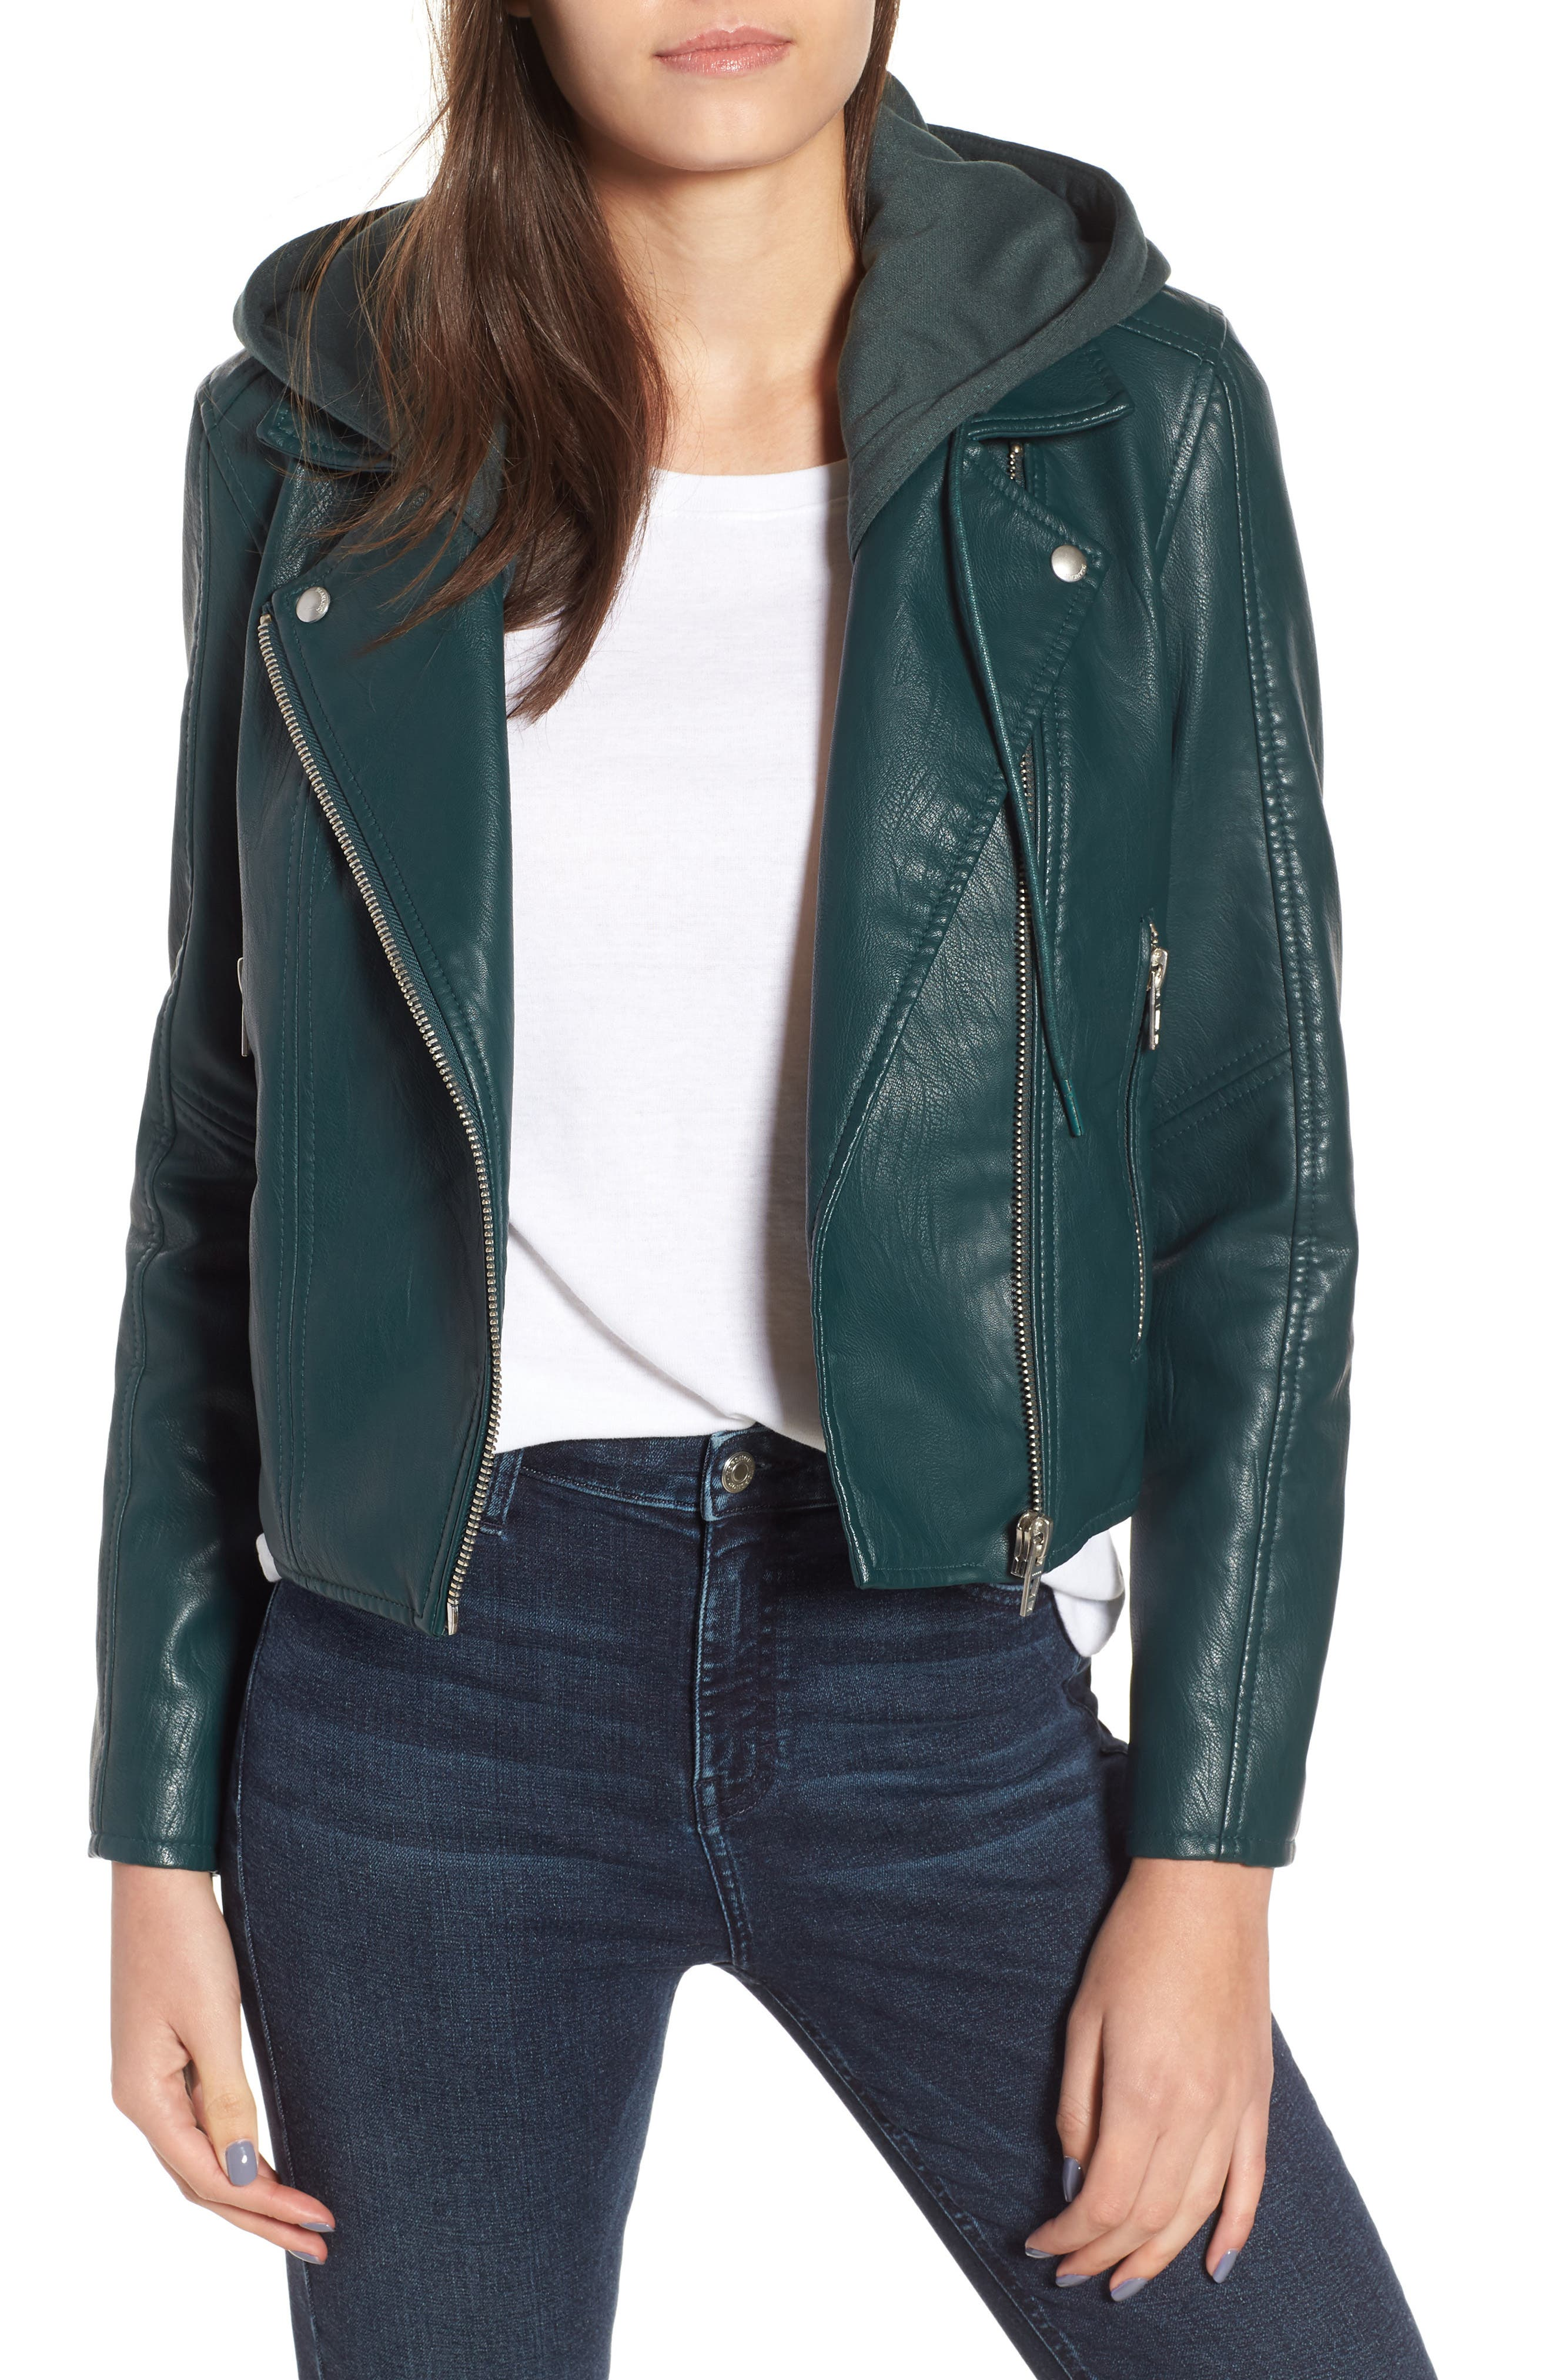 BLANKNYC, Meant to Be Moto Jacket with Removable Hood, Main thumbnail 1, color, EVERGREEN